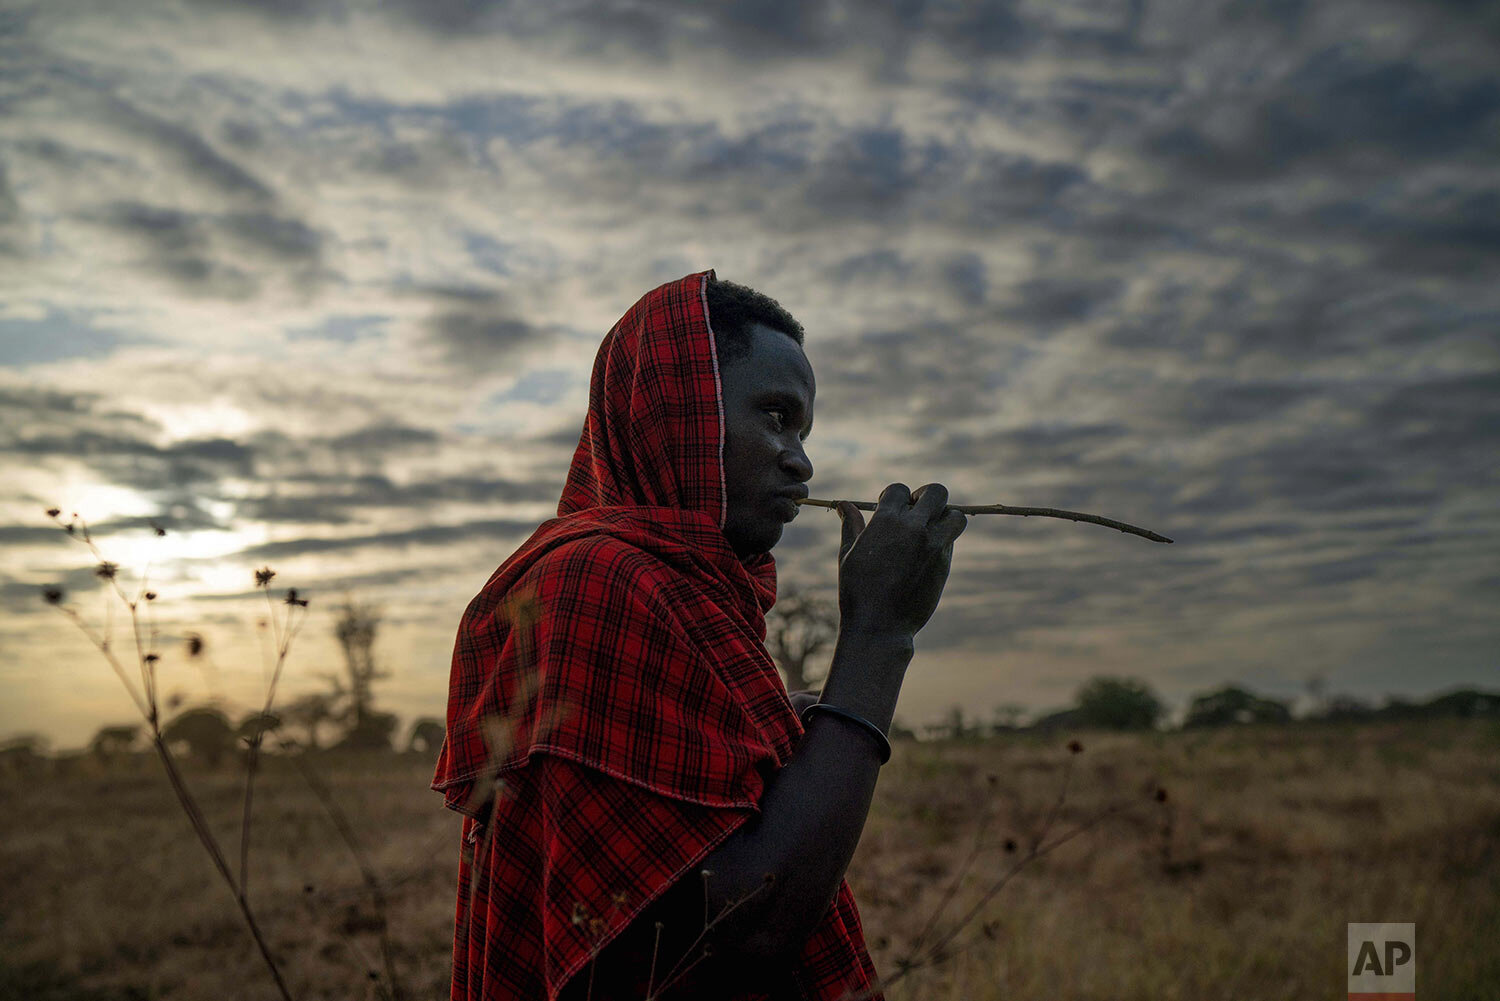 Saitoti Petro, brushes his teeth with a stick before taking his herd to the fields in the village of Narakauwo, Tanzania, Thursday July 4, 2019. (AP Photo/Jerome Delay)